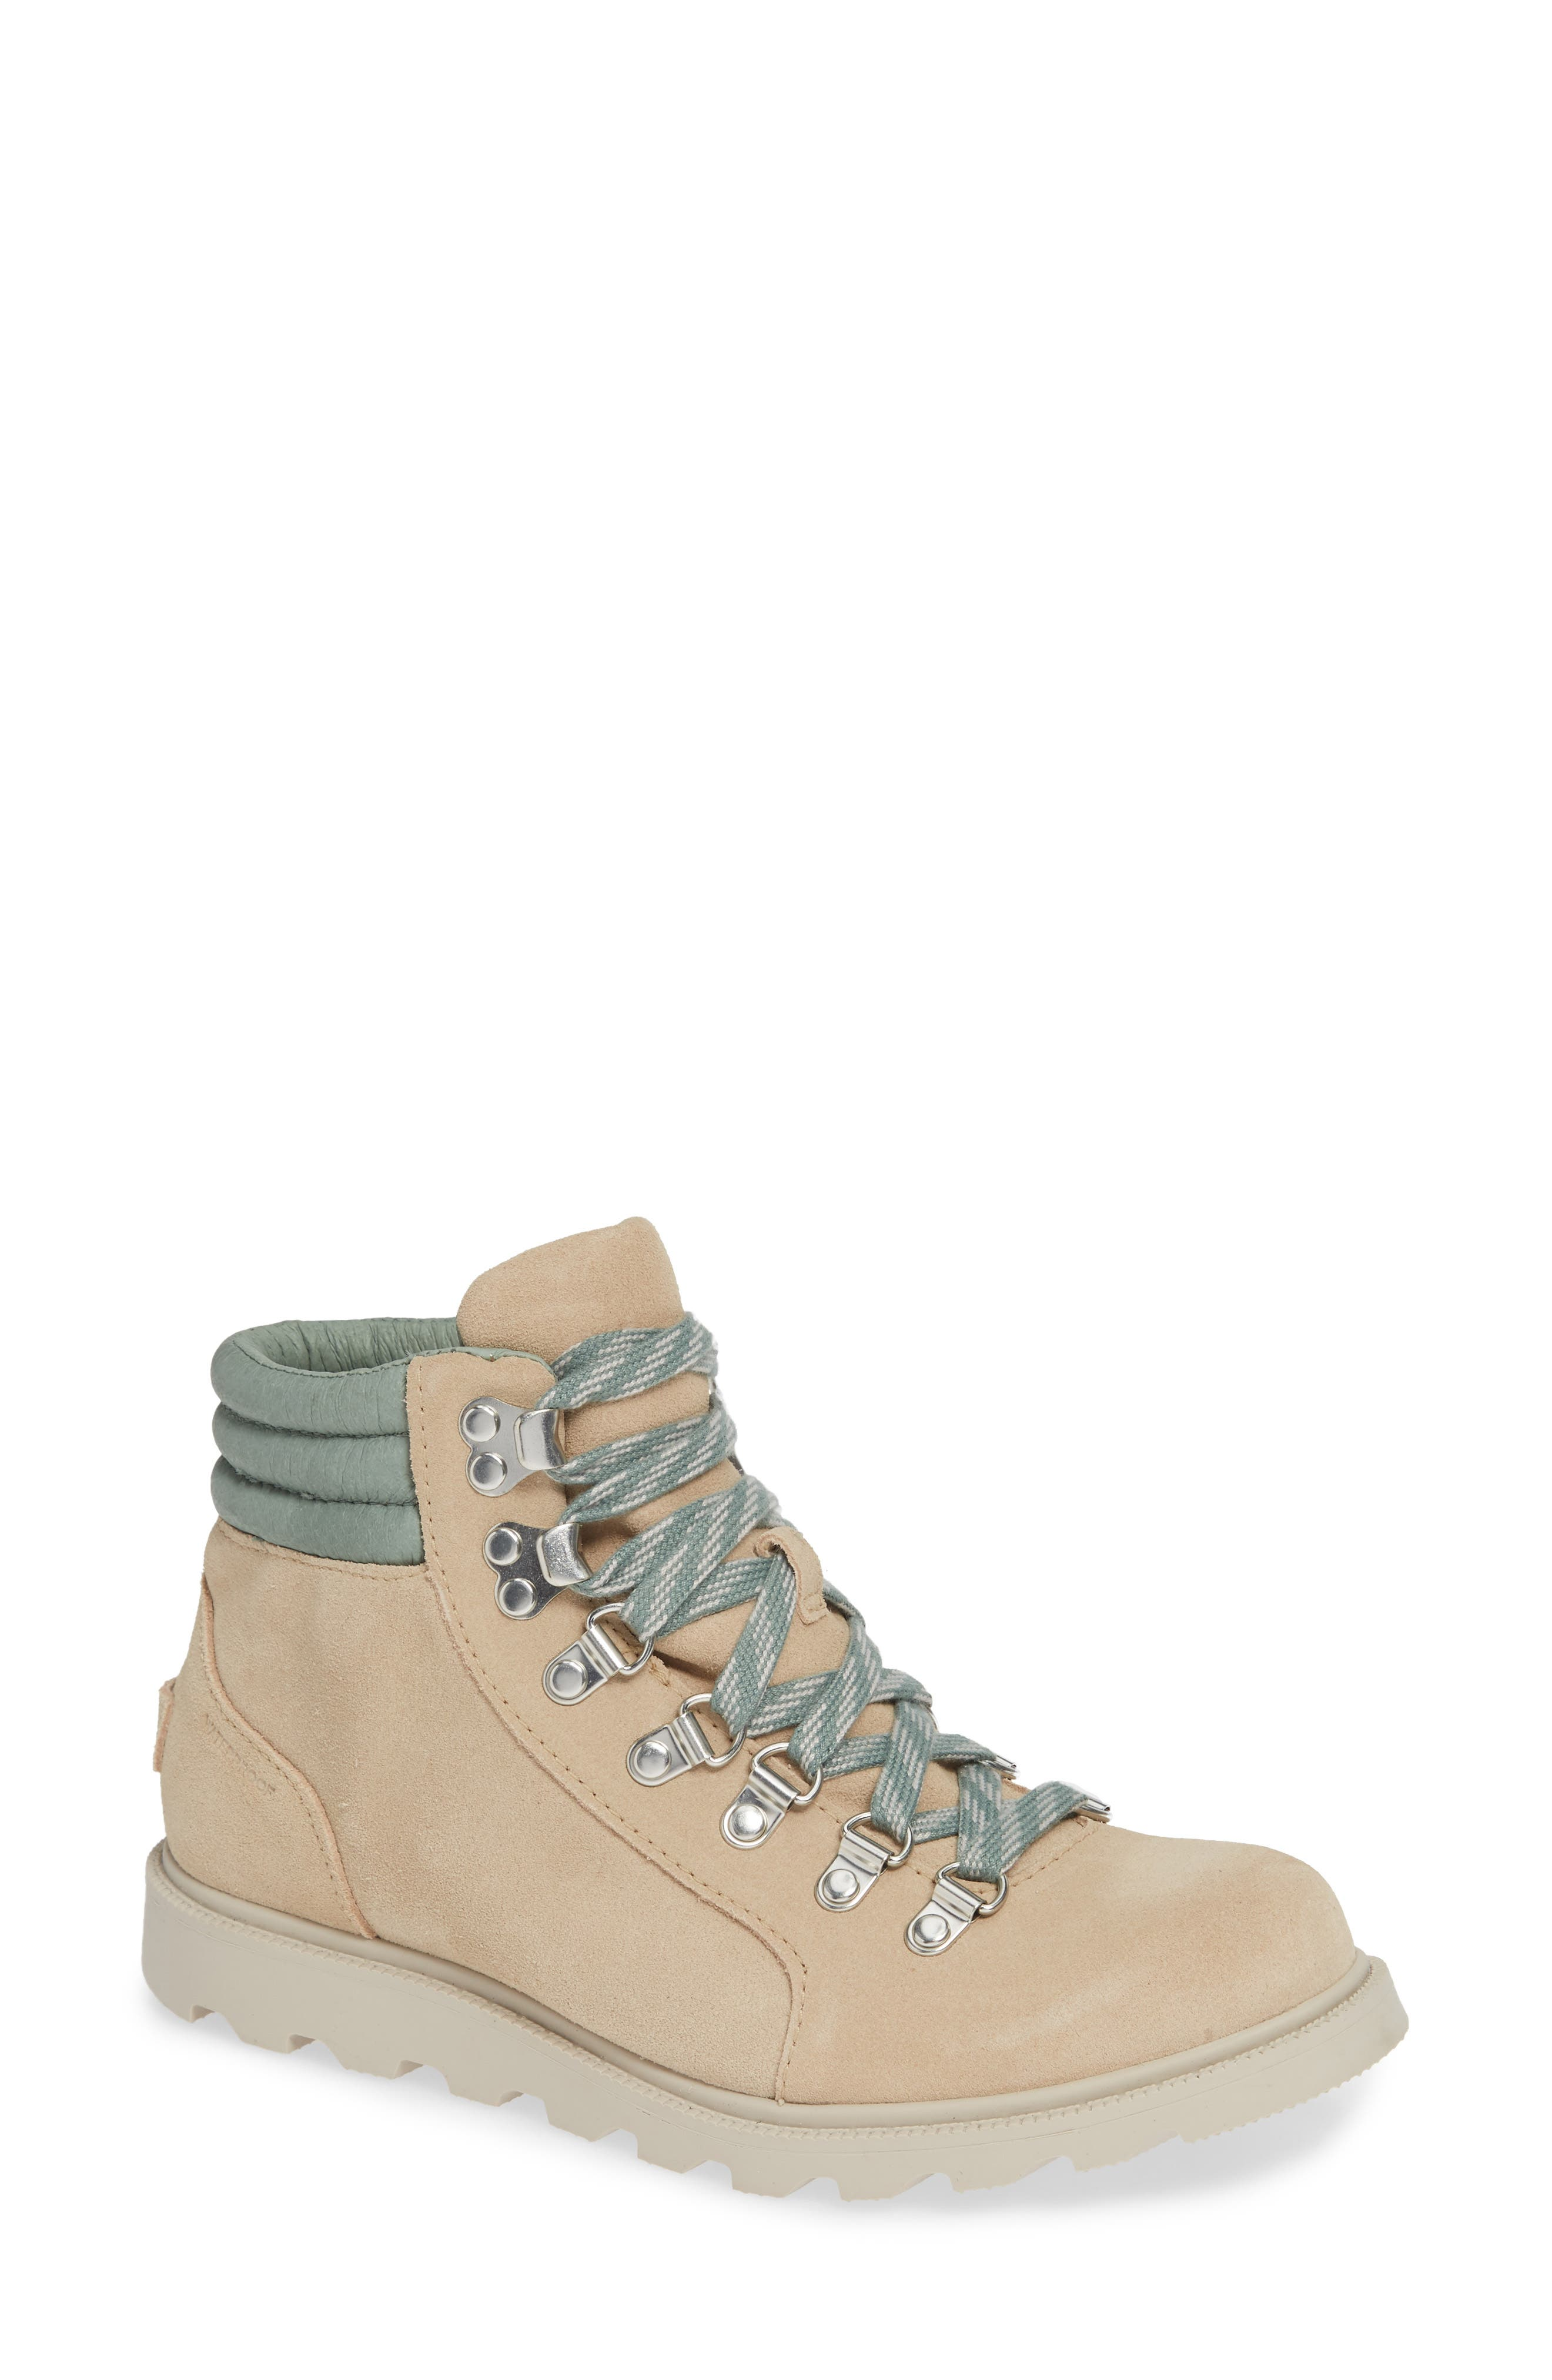 Ainsley Conquest Waterproof Boot,                             Main thumbnail 1, color,                             OATMEAL